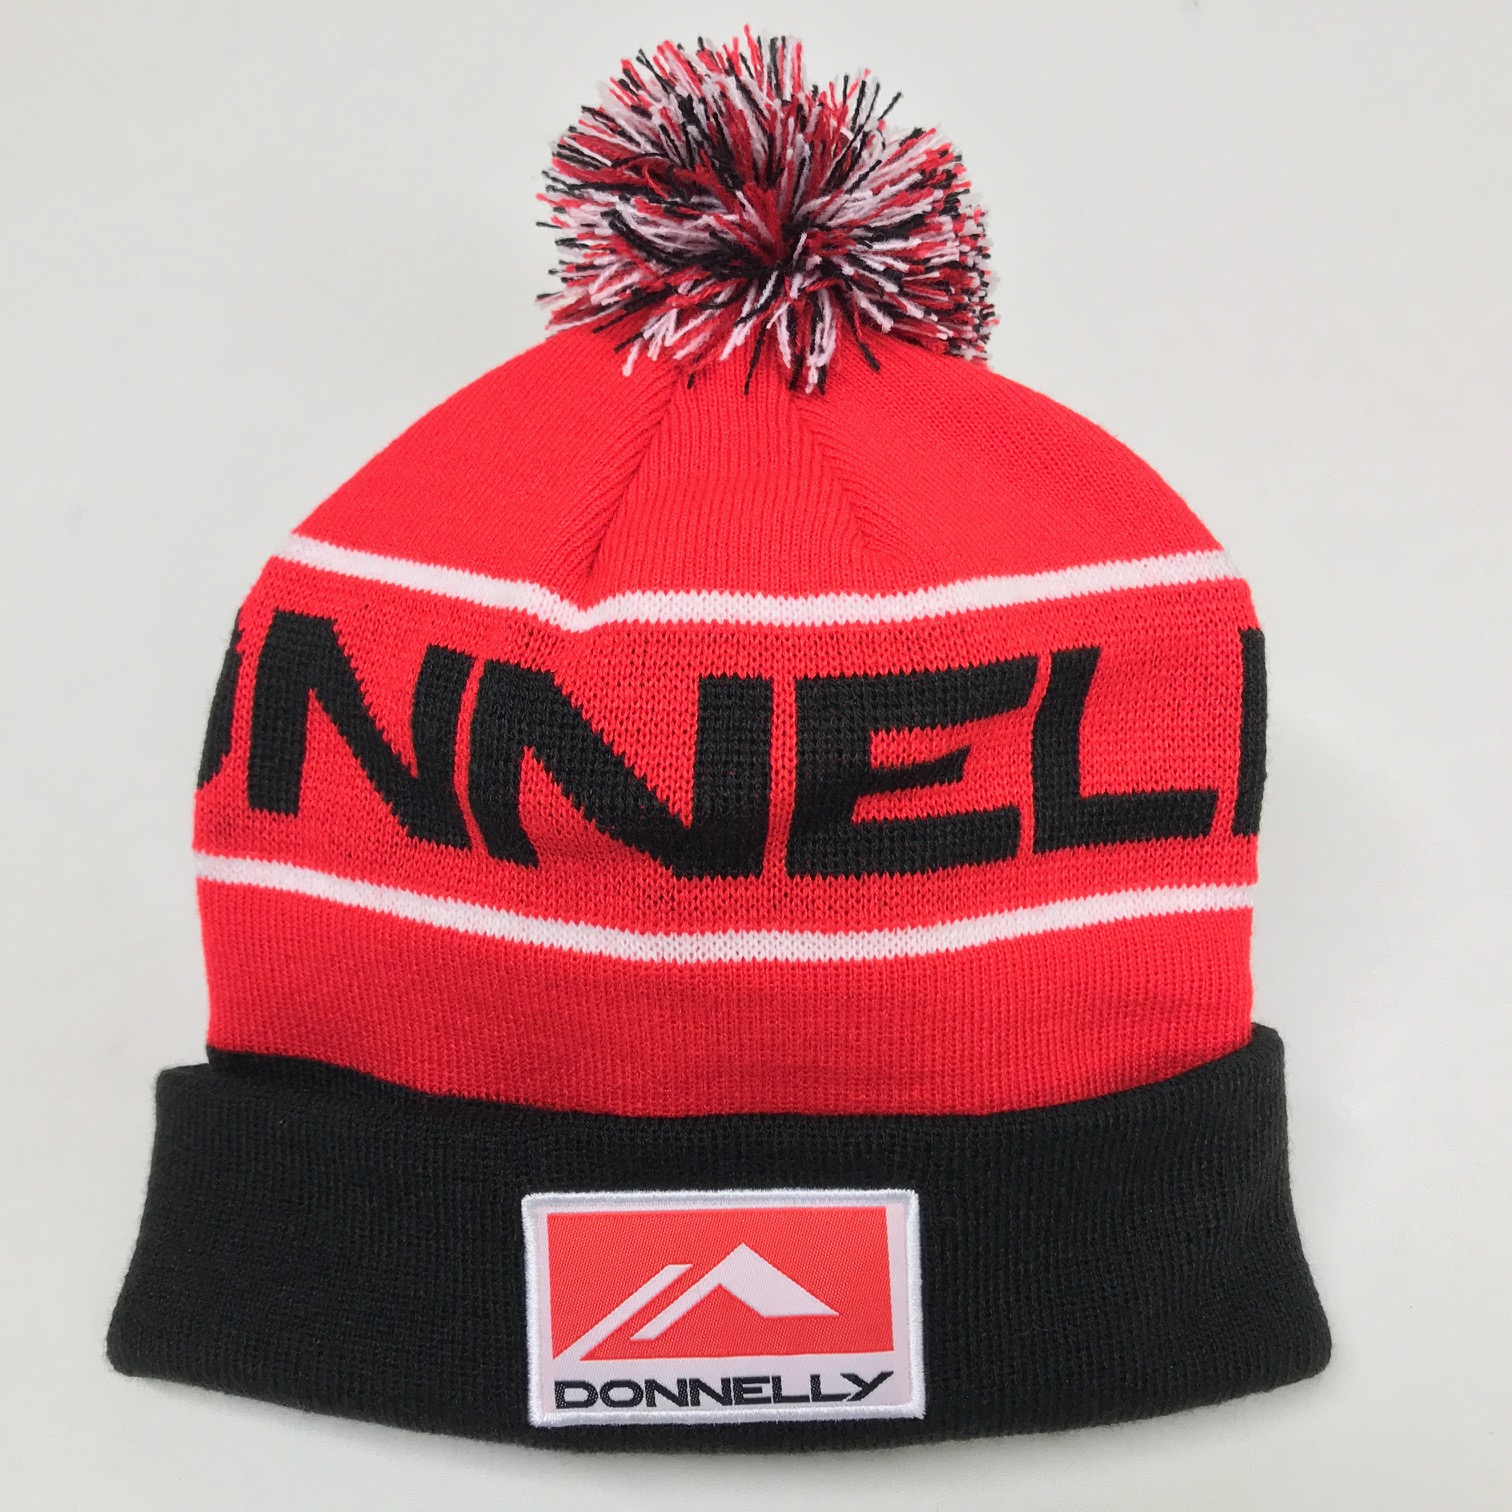 Donnelly Cycling Beanie Hat, Red/Black THUMBNAIL